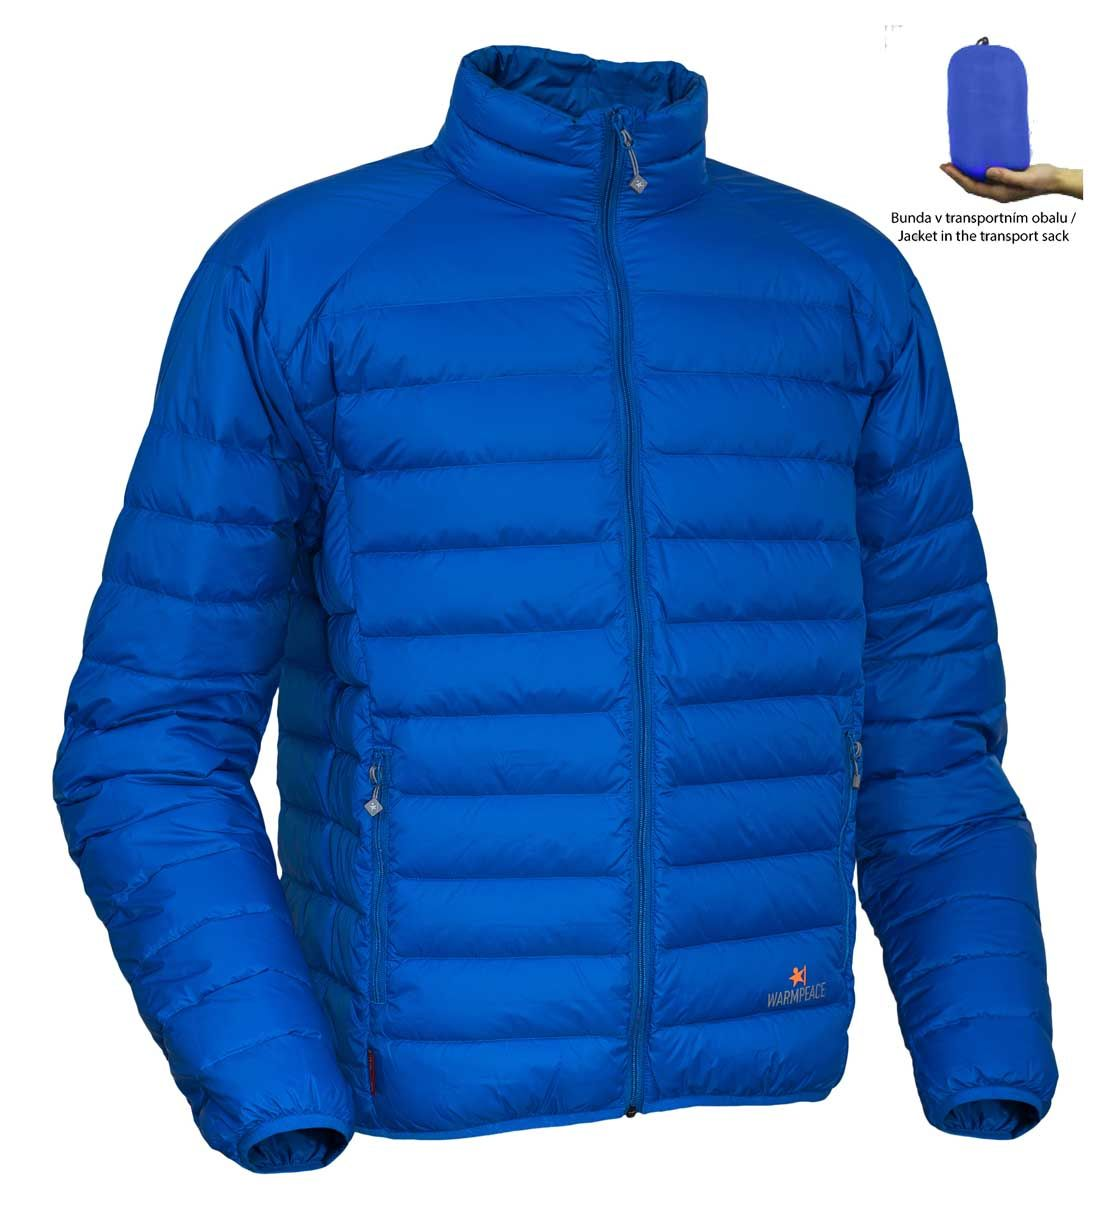 Tazz-Sport - Warmpeace Drake péřová bunda royal blue